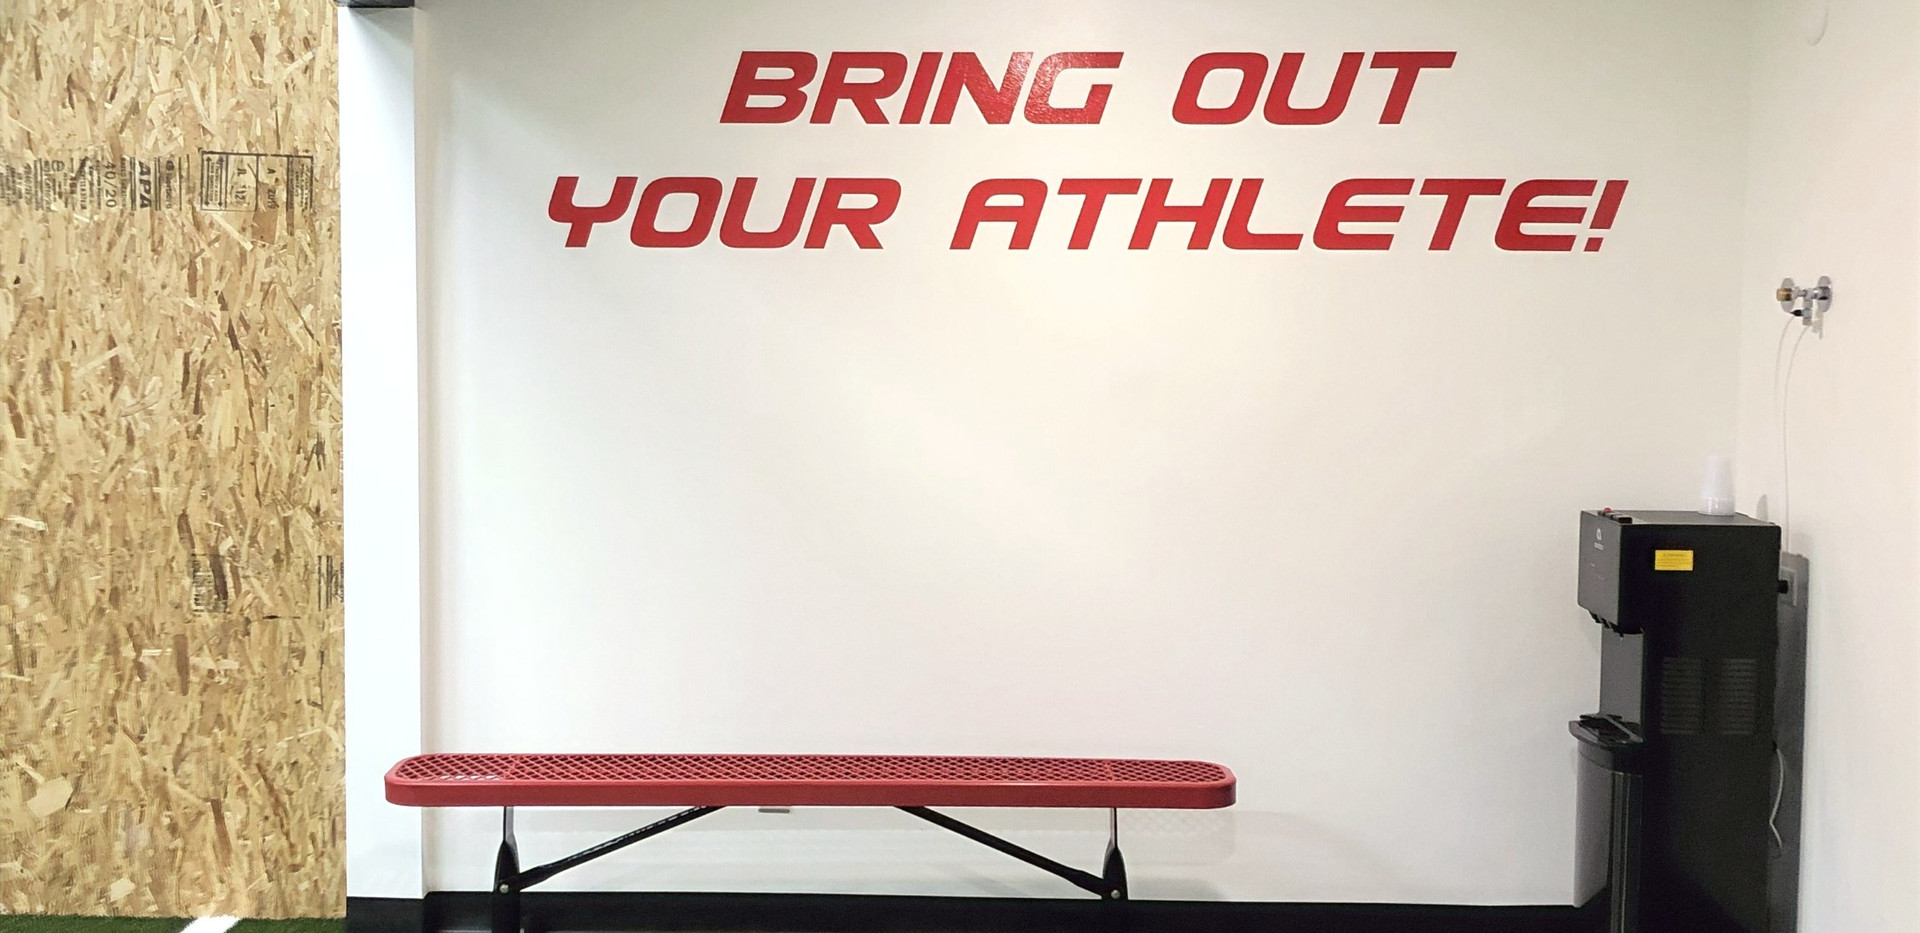 simplespeedcoach_bring_out_your_athlete_